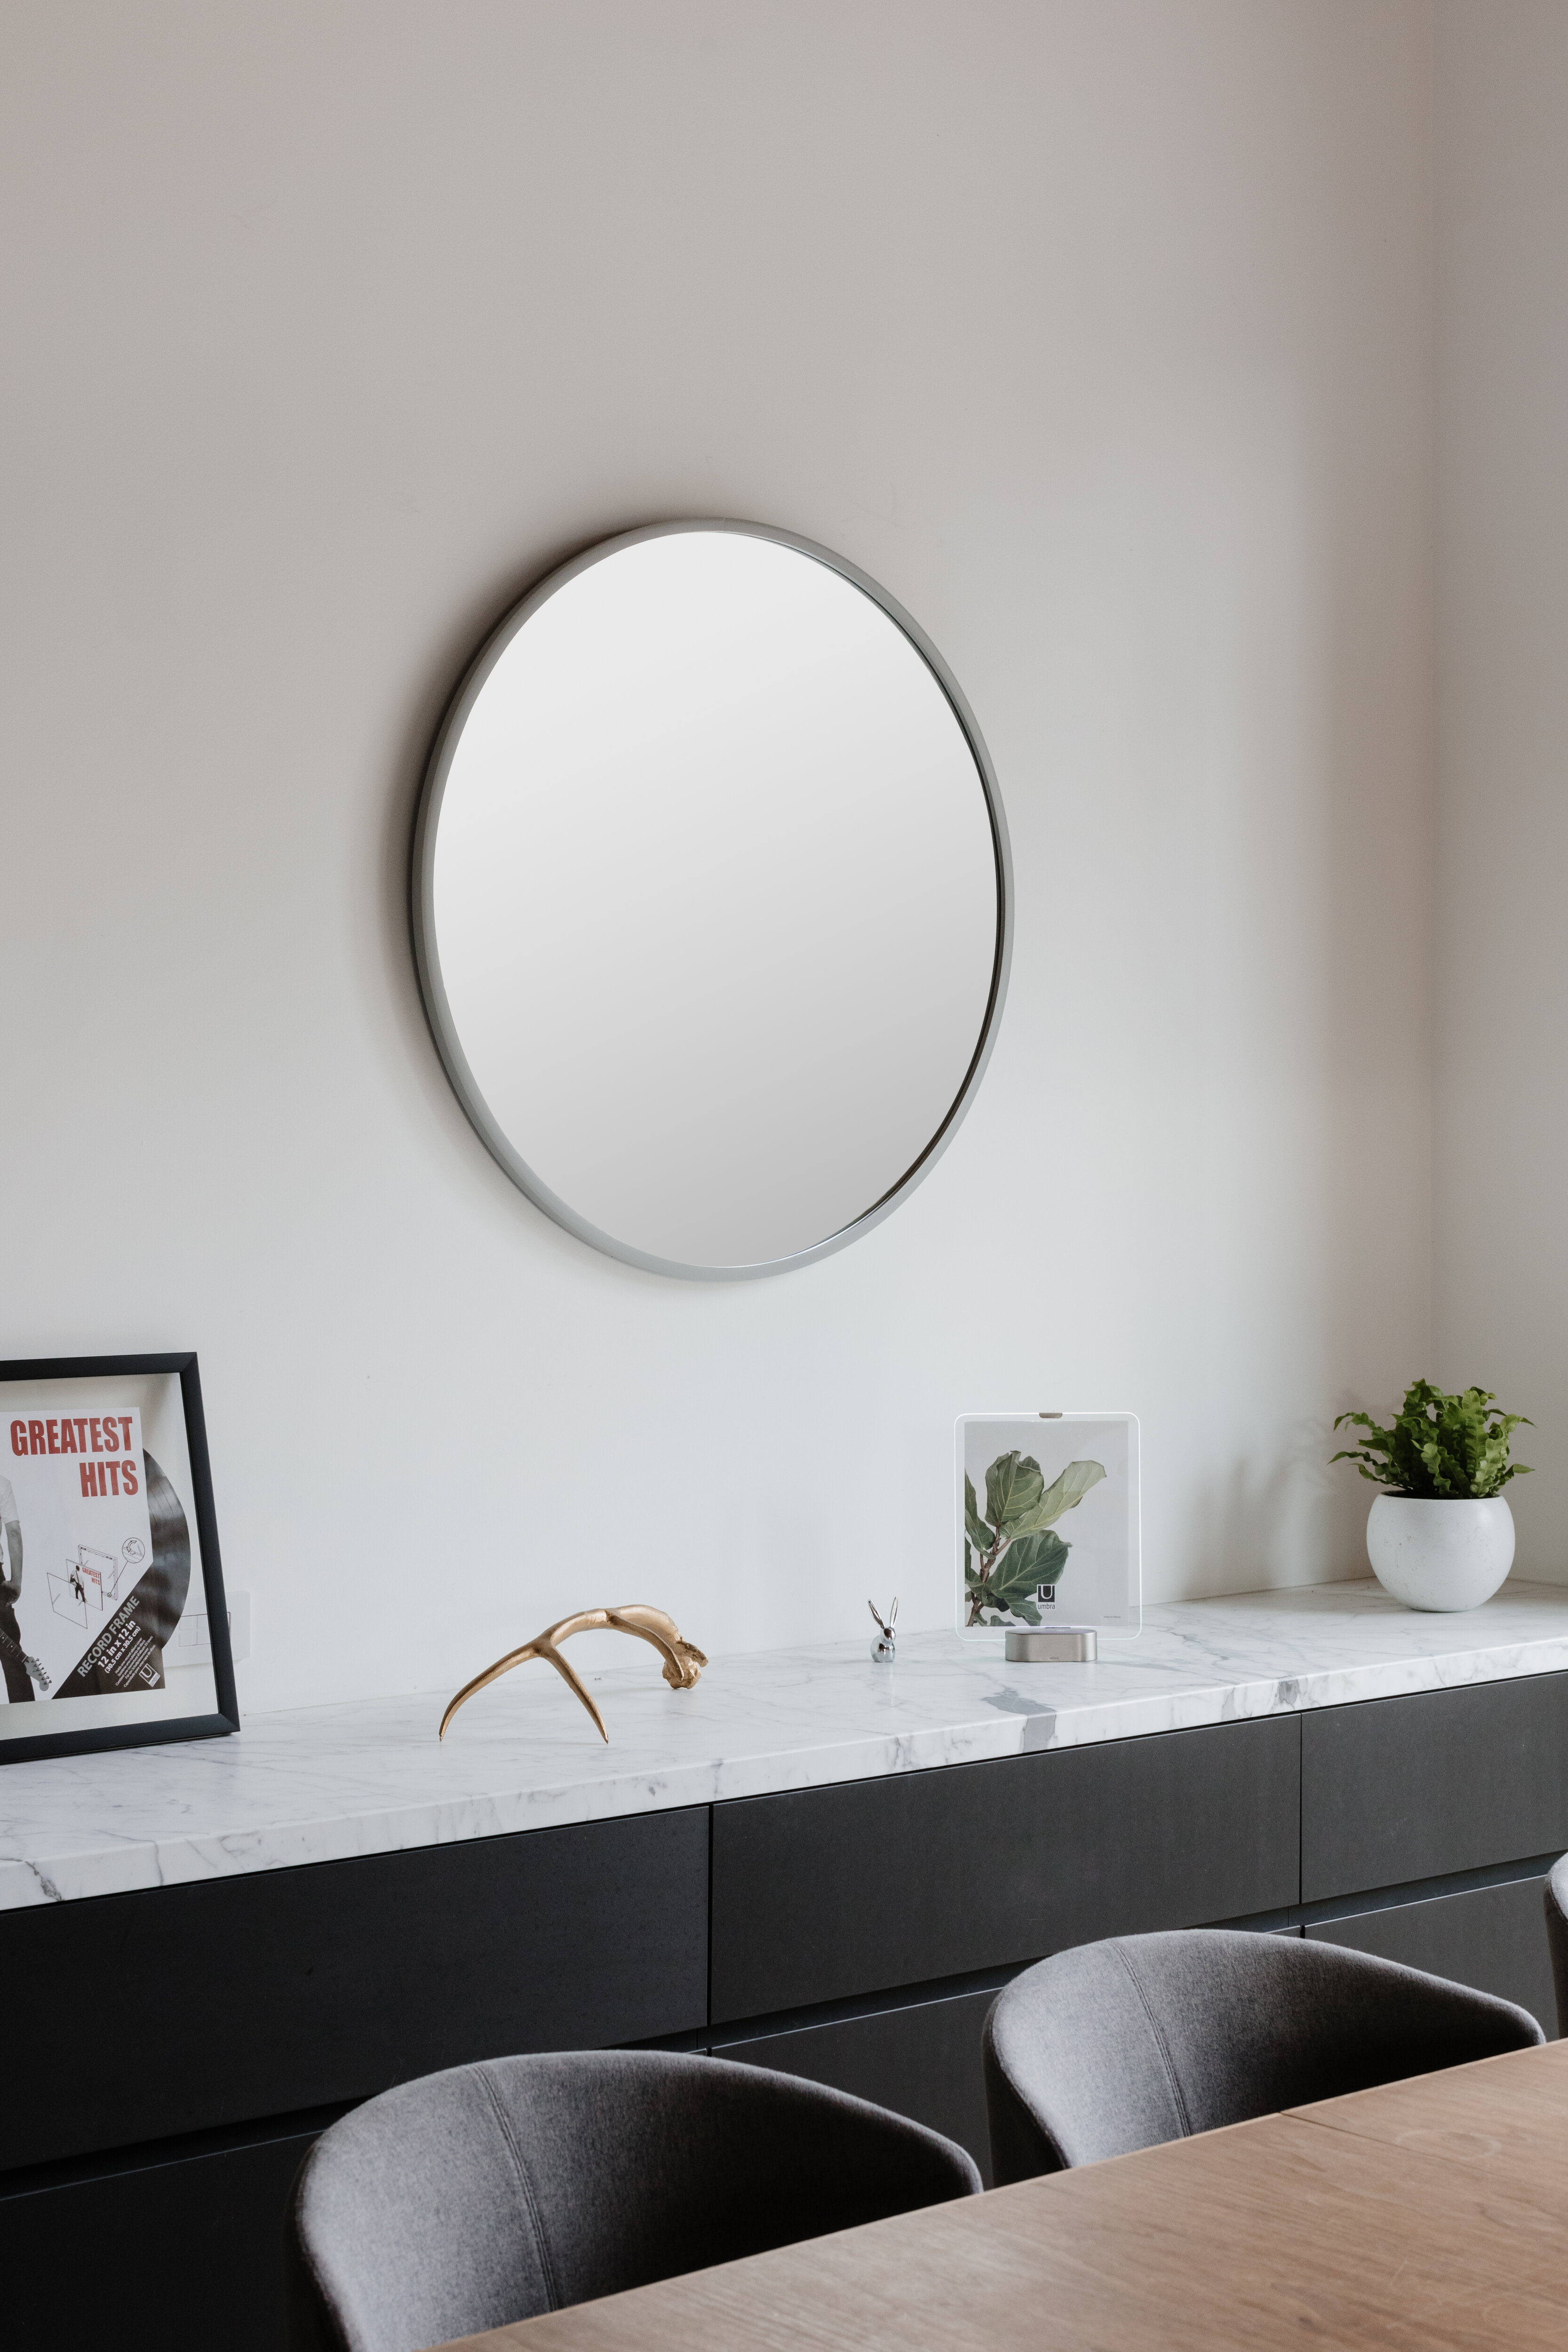 Hub Modern And Contemporary Accent Mirror For Hub Modern And Contemporary Accent Mirrors (Image 4 of 20)